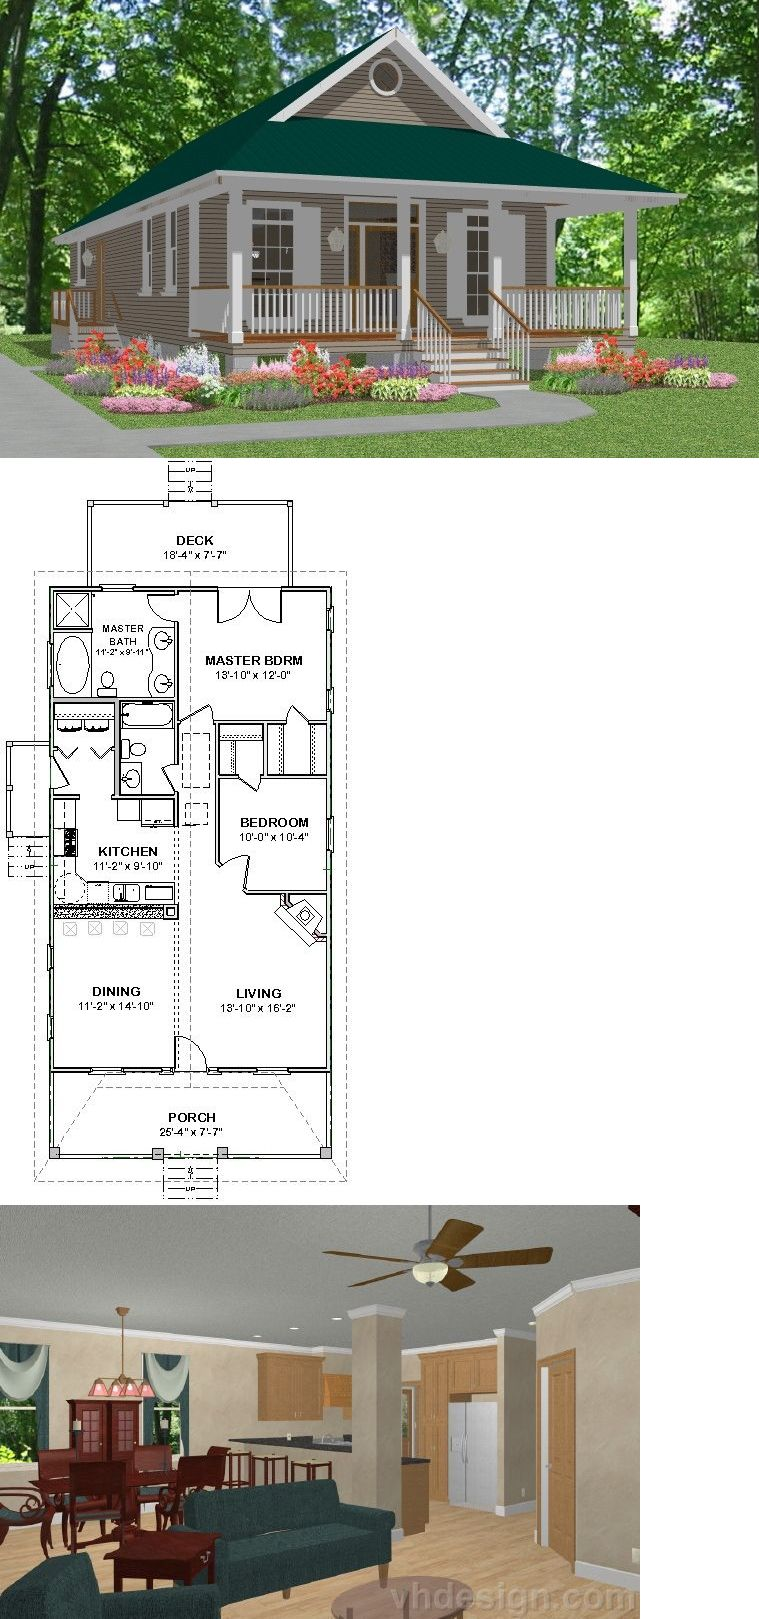 Custom Small House Home Building Plans 2 Bed Cottage1170 Sf Pdf File Building Plans House House Blueprints Barn House Plans